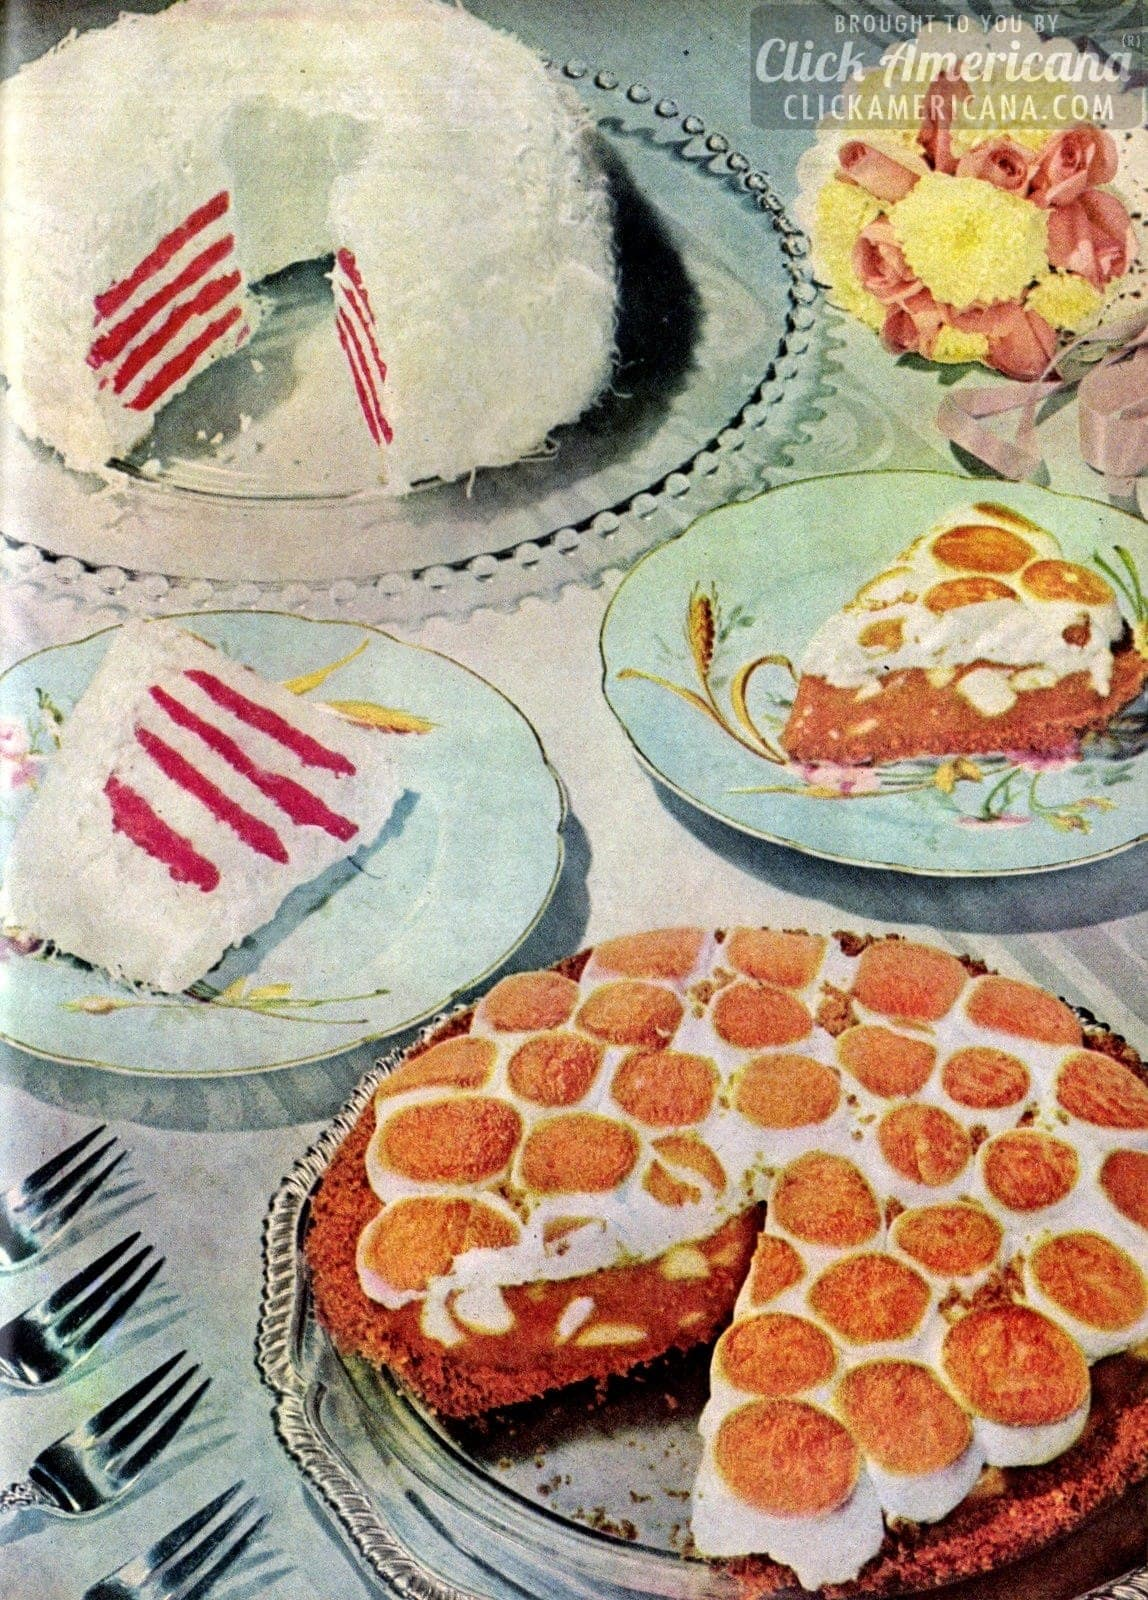 Festive Polka Dot Pie & Ribbon Cake Recipes (1951)